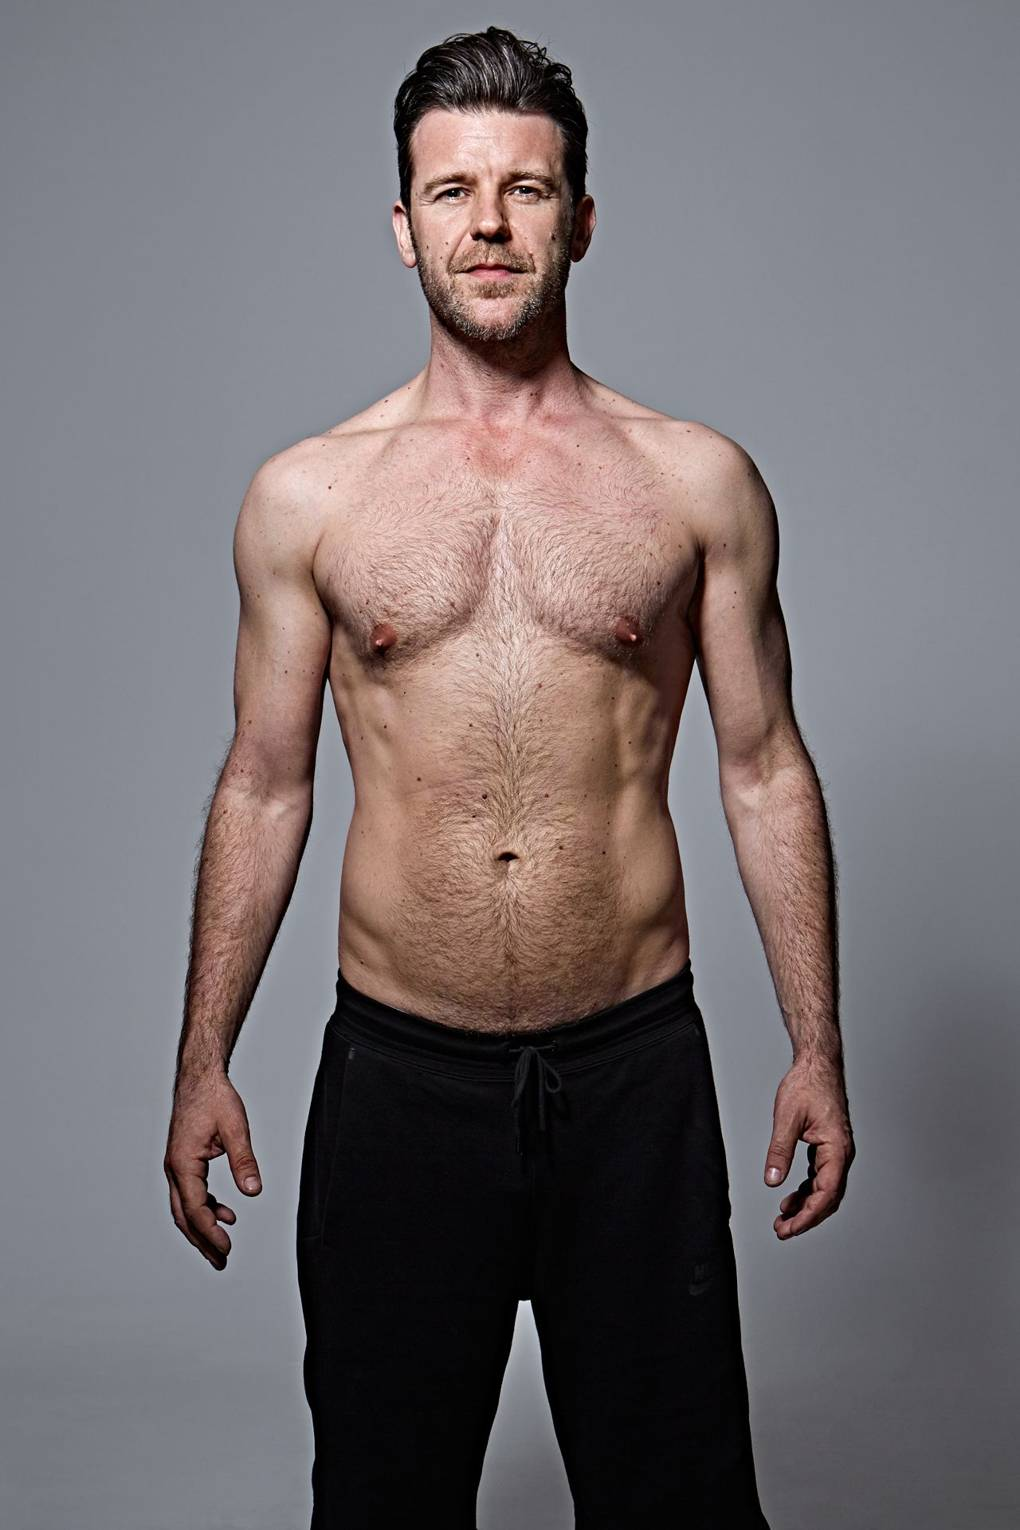 How to get a six pack in 12 weeks | British GQ